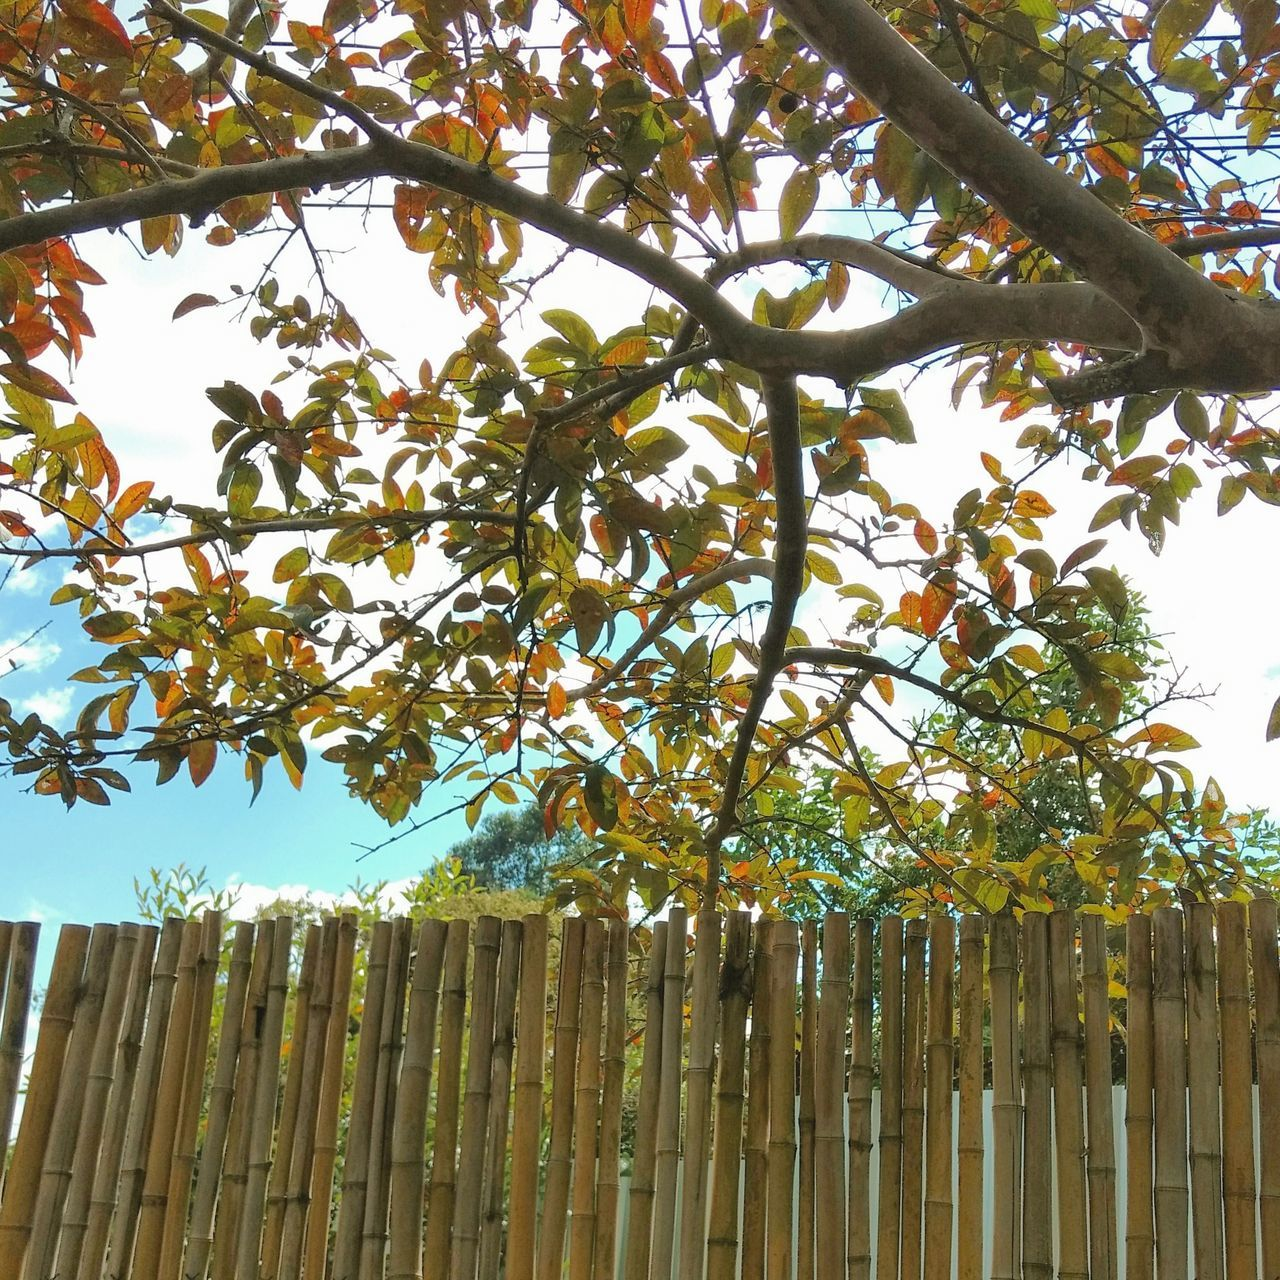 Tree Tree Nature Growth Outdoors Beauty In Nature Sky Branch Day Honduras No People Low Angle View